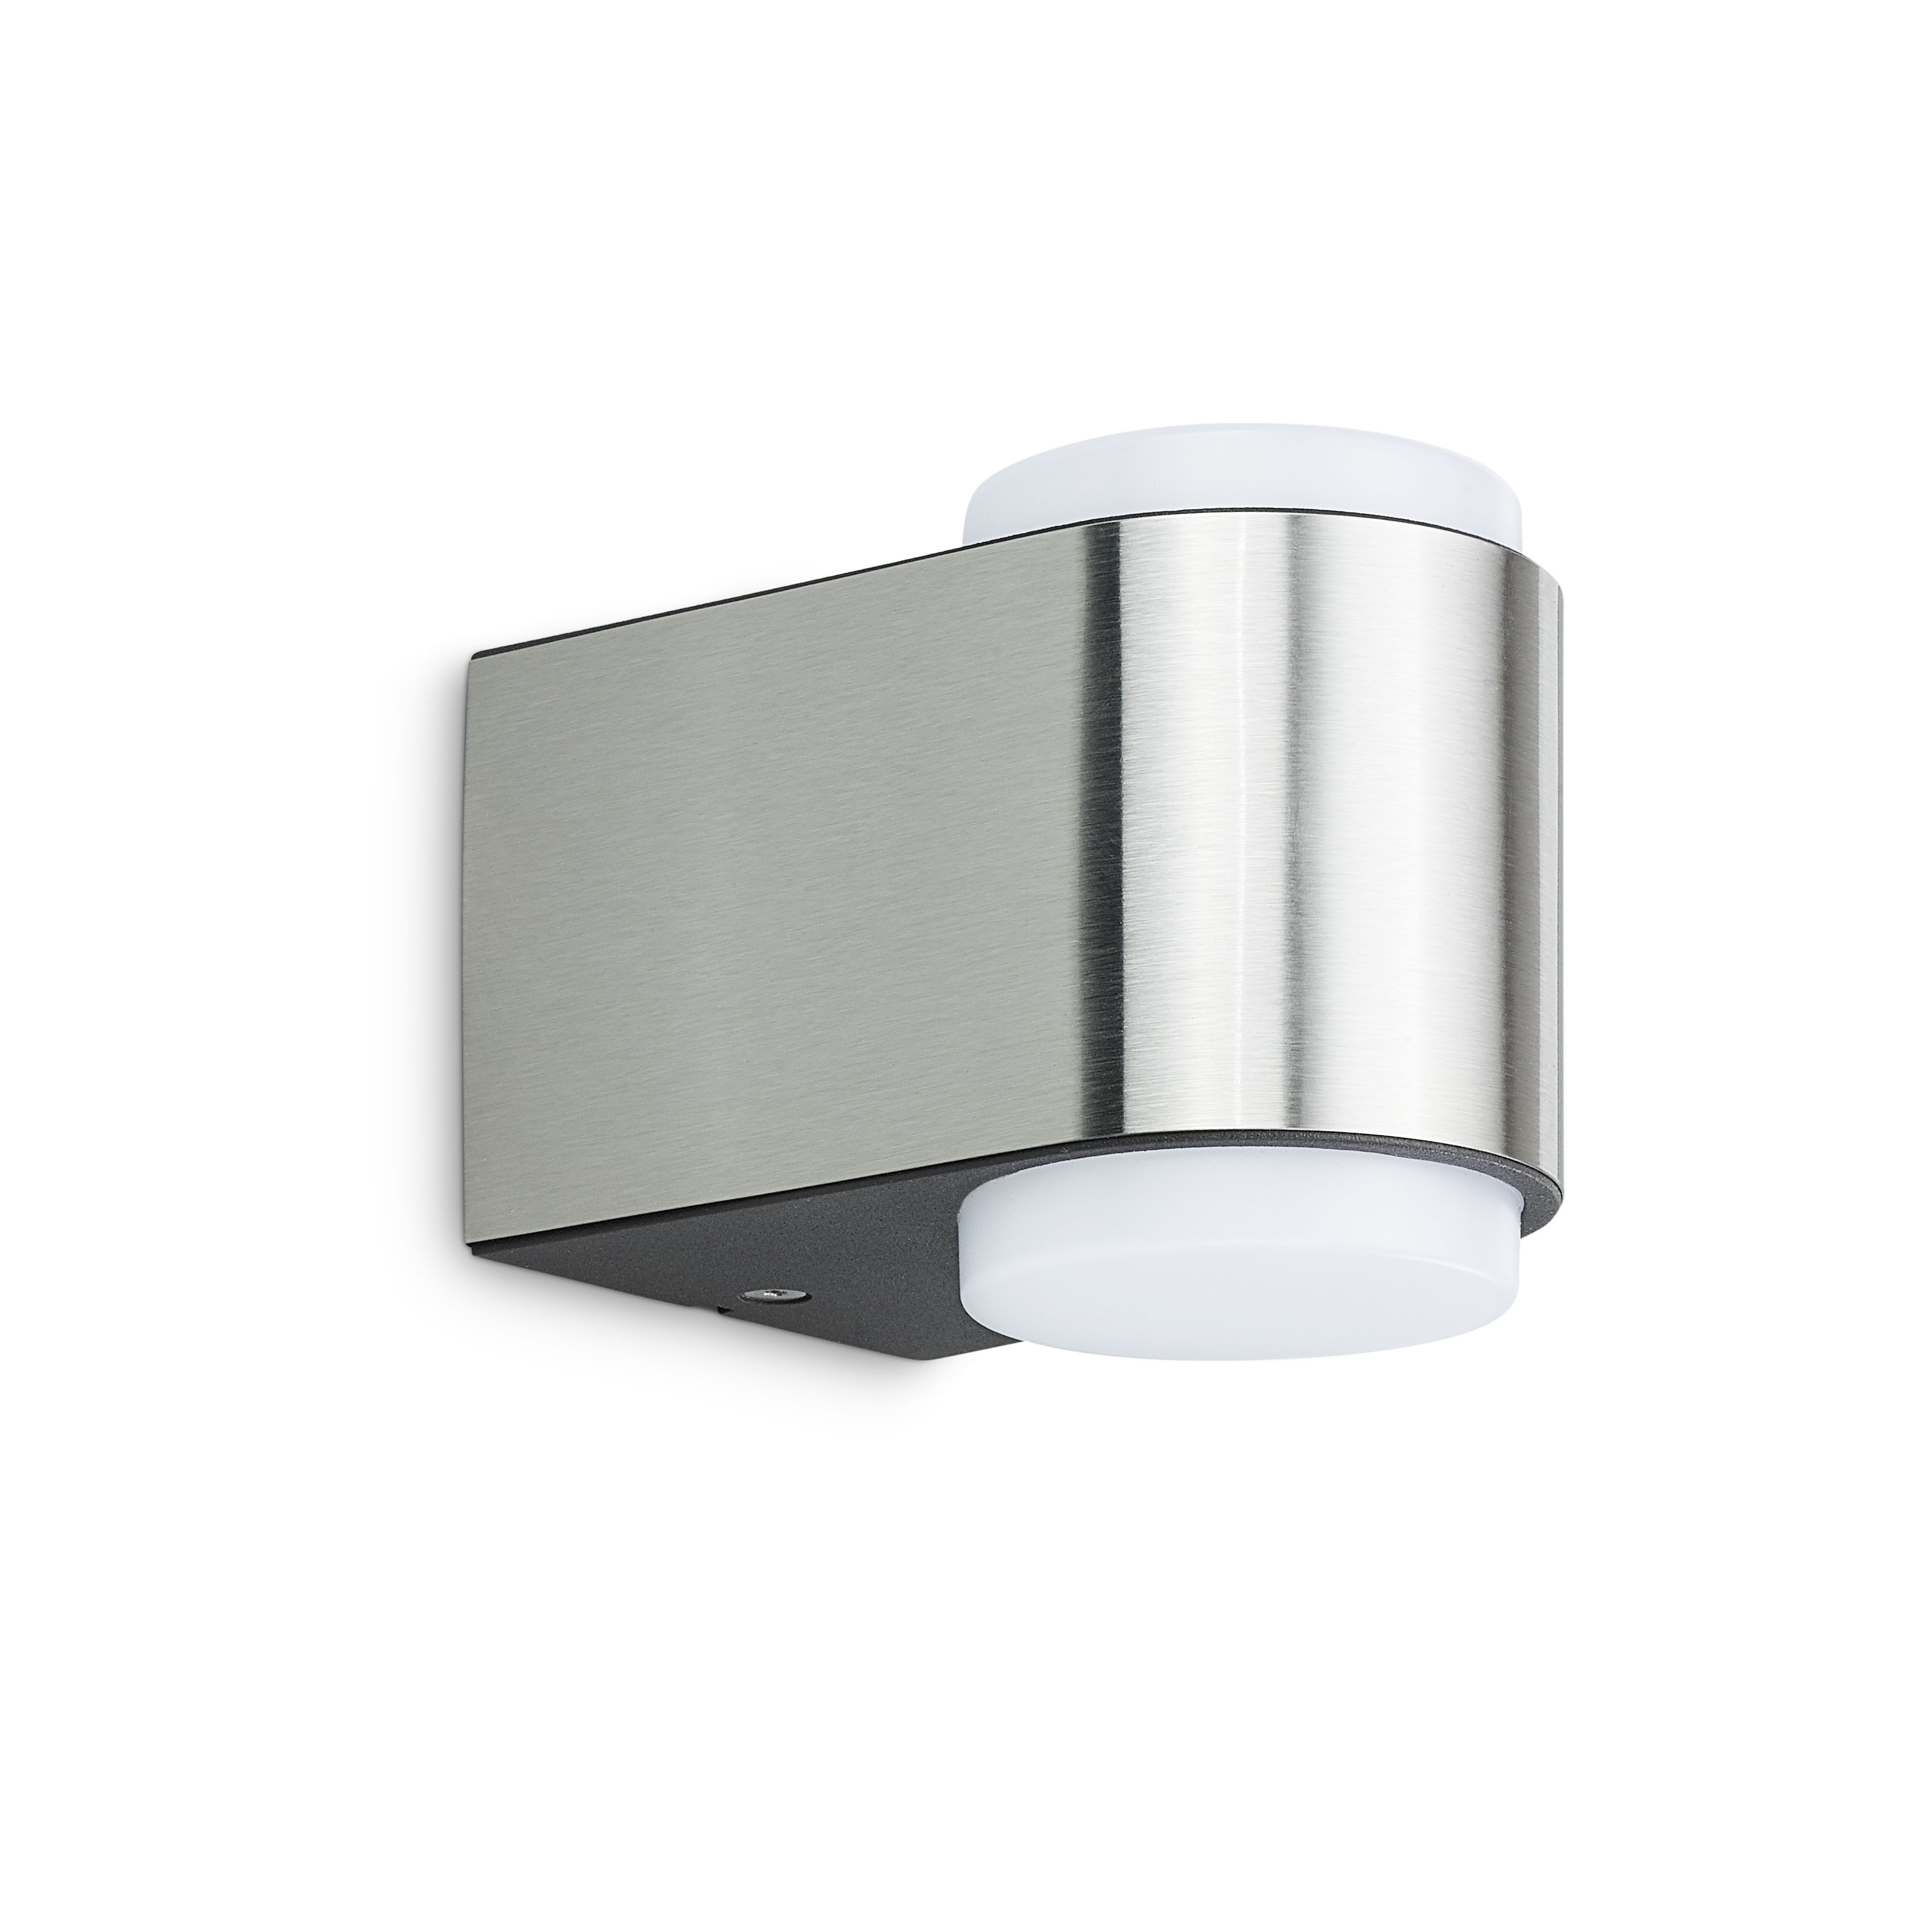 WALL LIGHT LED UP/D PINTO 6W